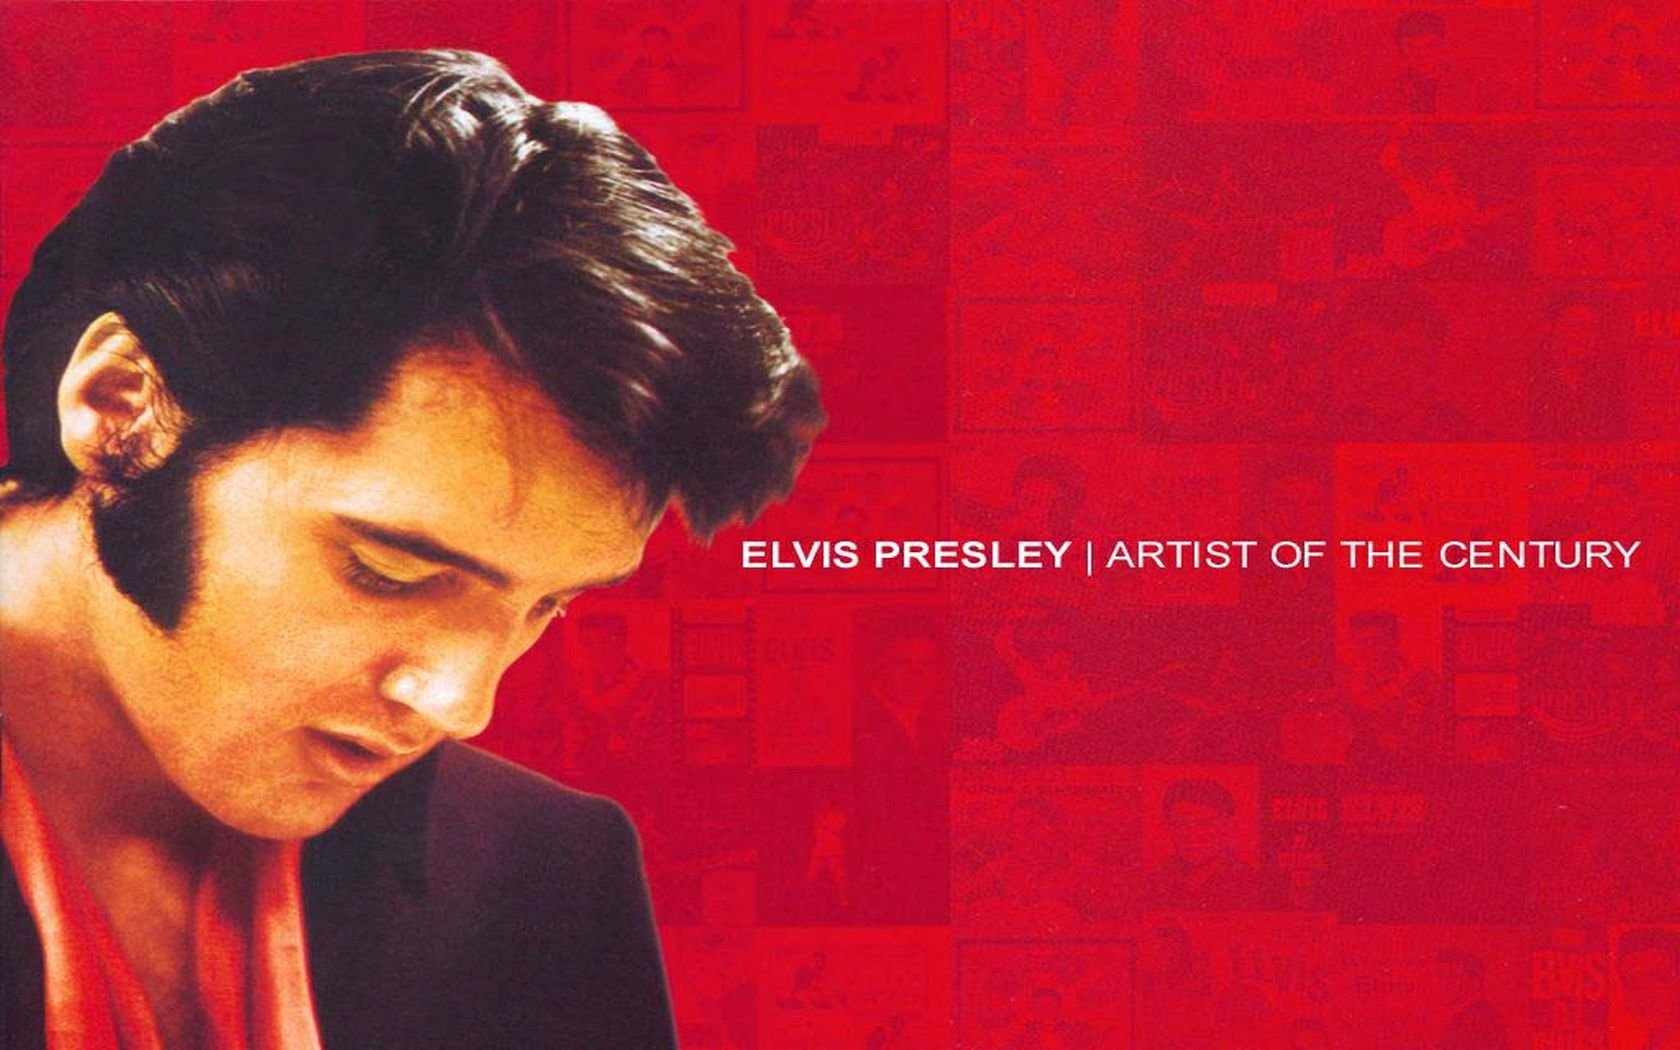 Free Download Elvis Presley Wallpaper Id 345174 Hd 1680x1050 For